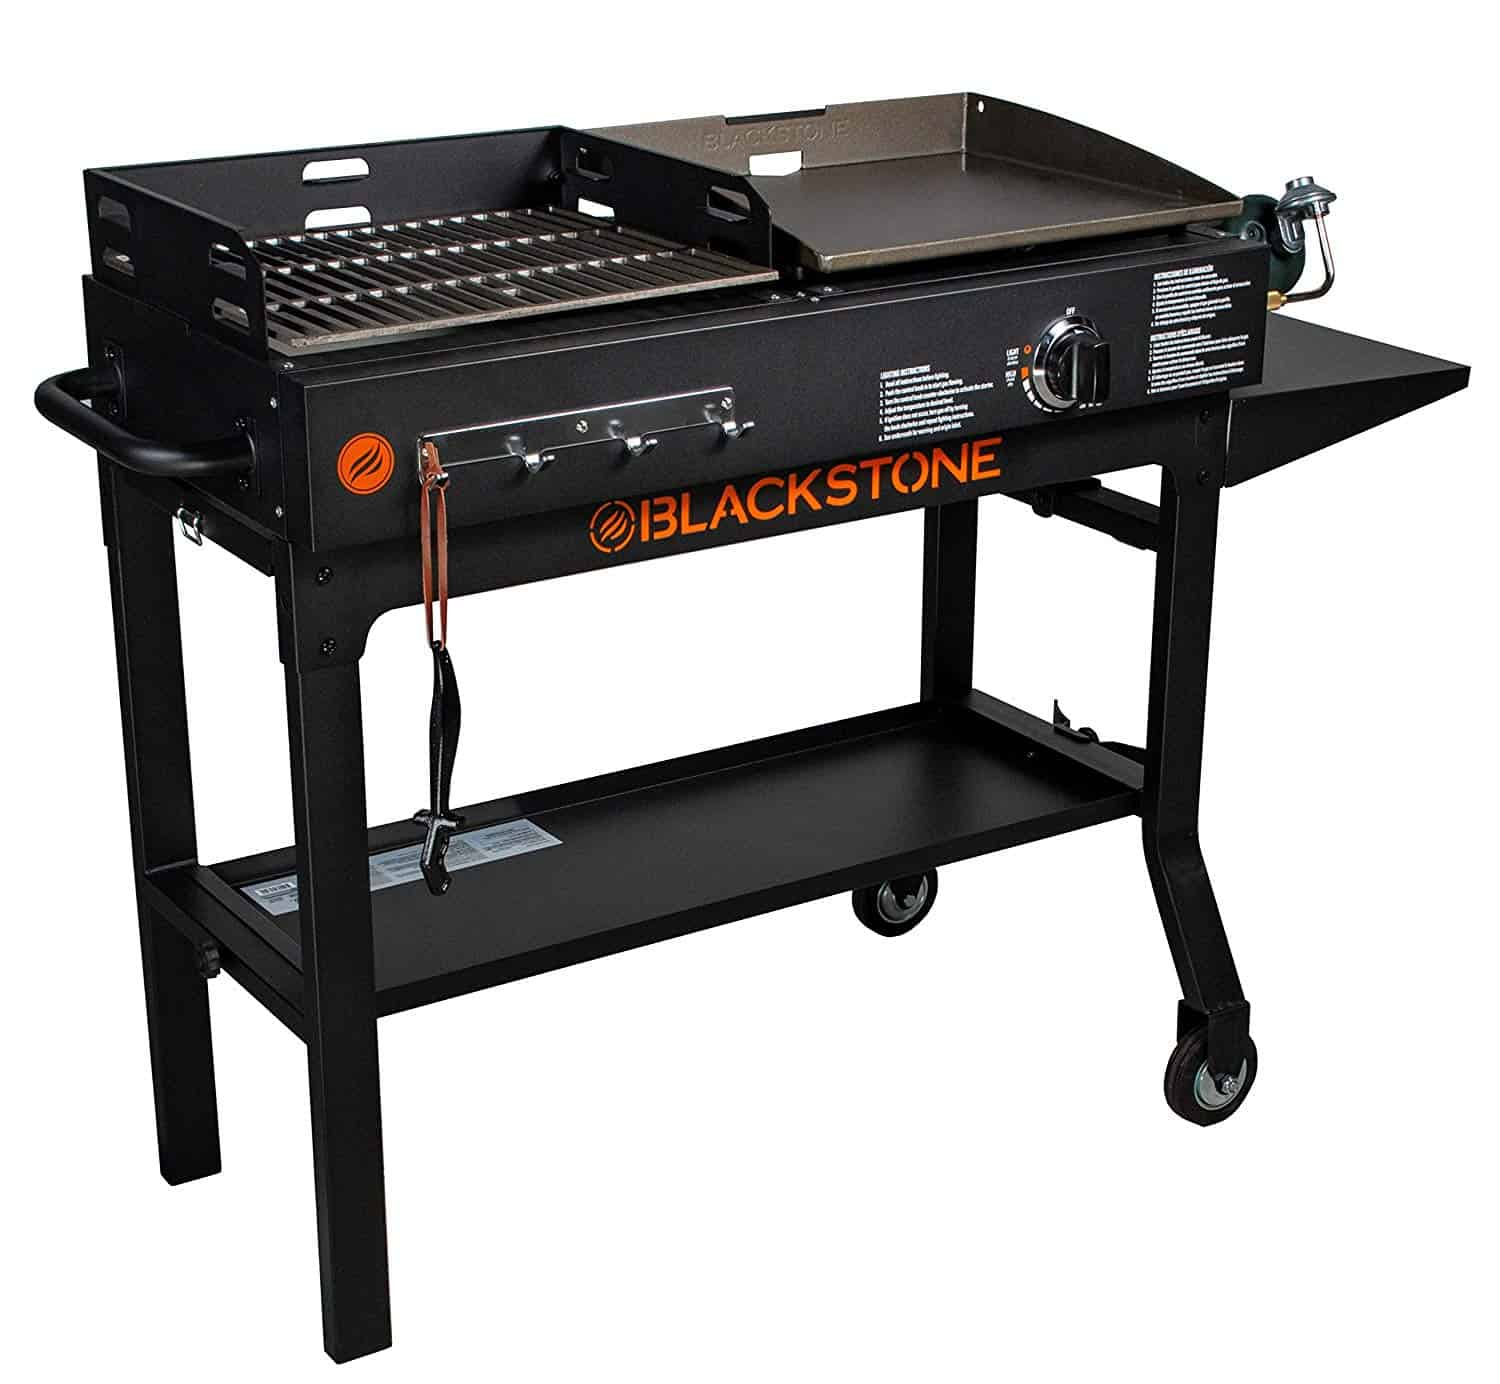 Blackstone griddle and charcoal grill combo